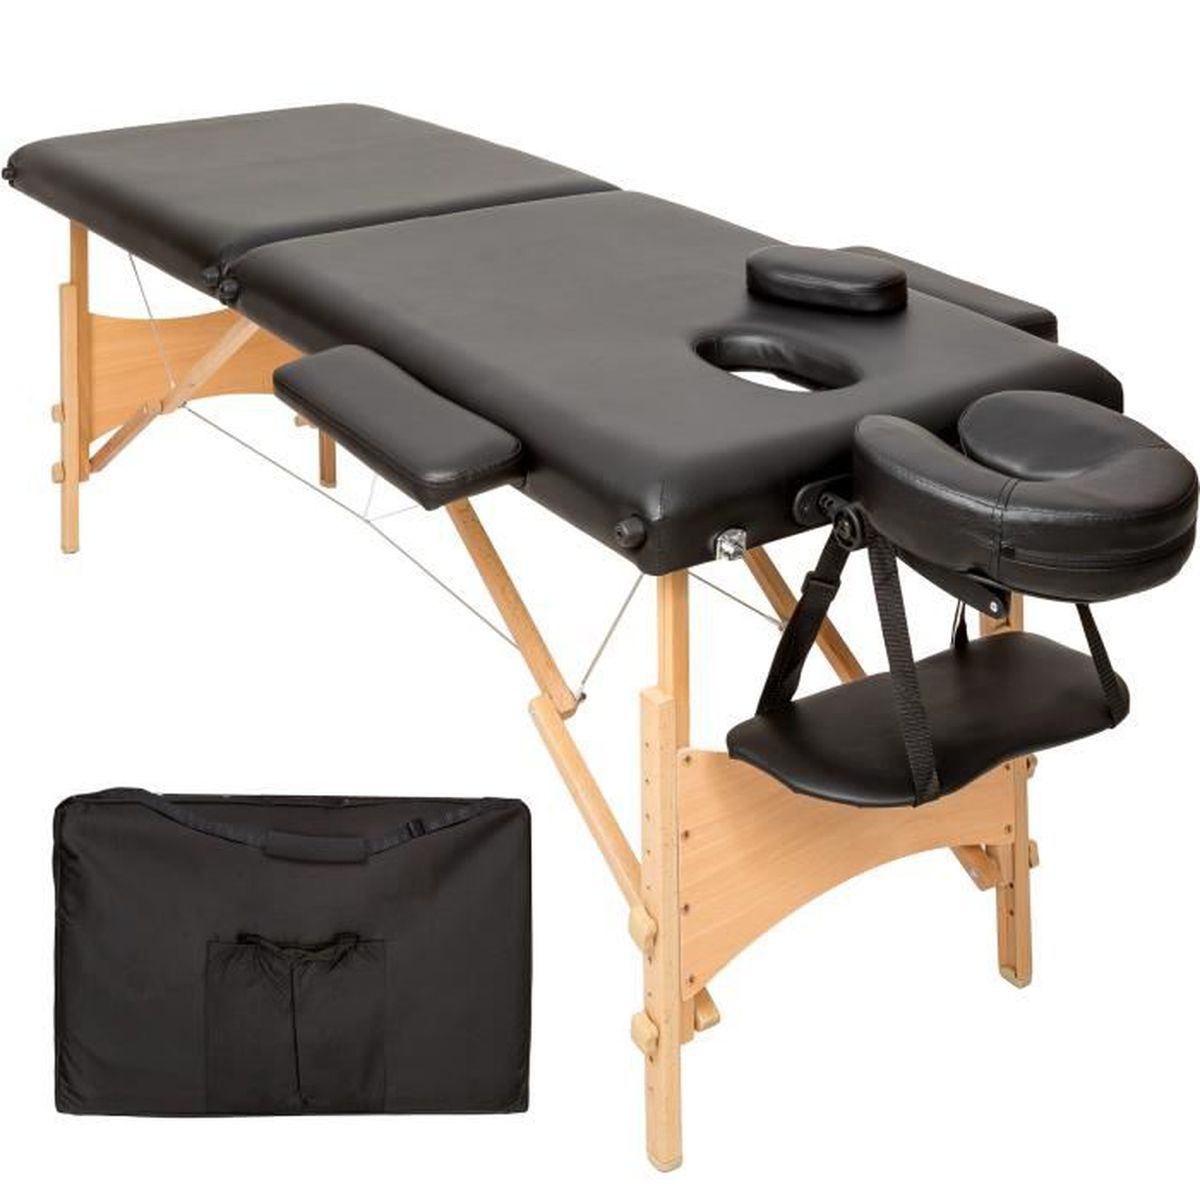 Table de massage TECTAKE Table de Massage Pliante Bois 2 Zones Port